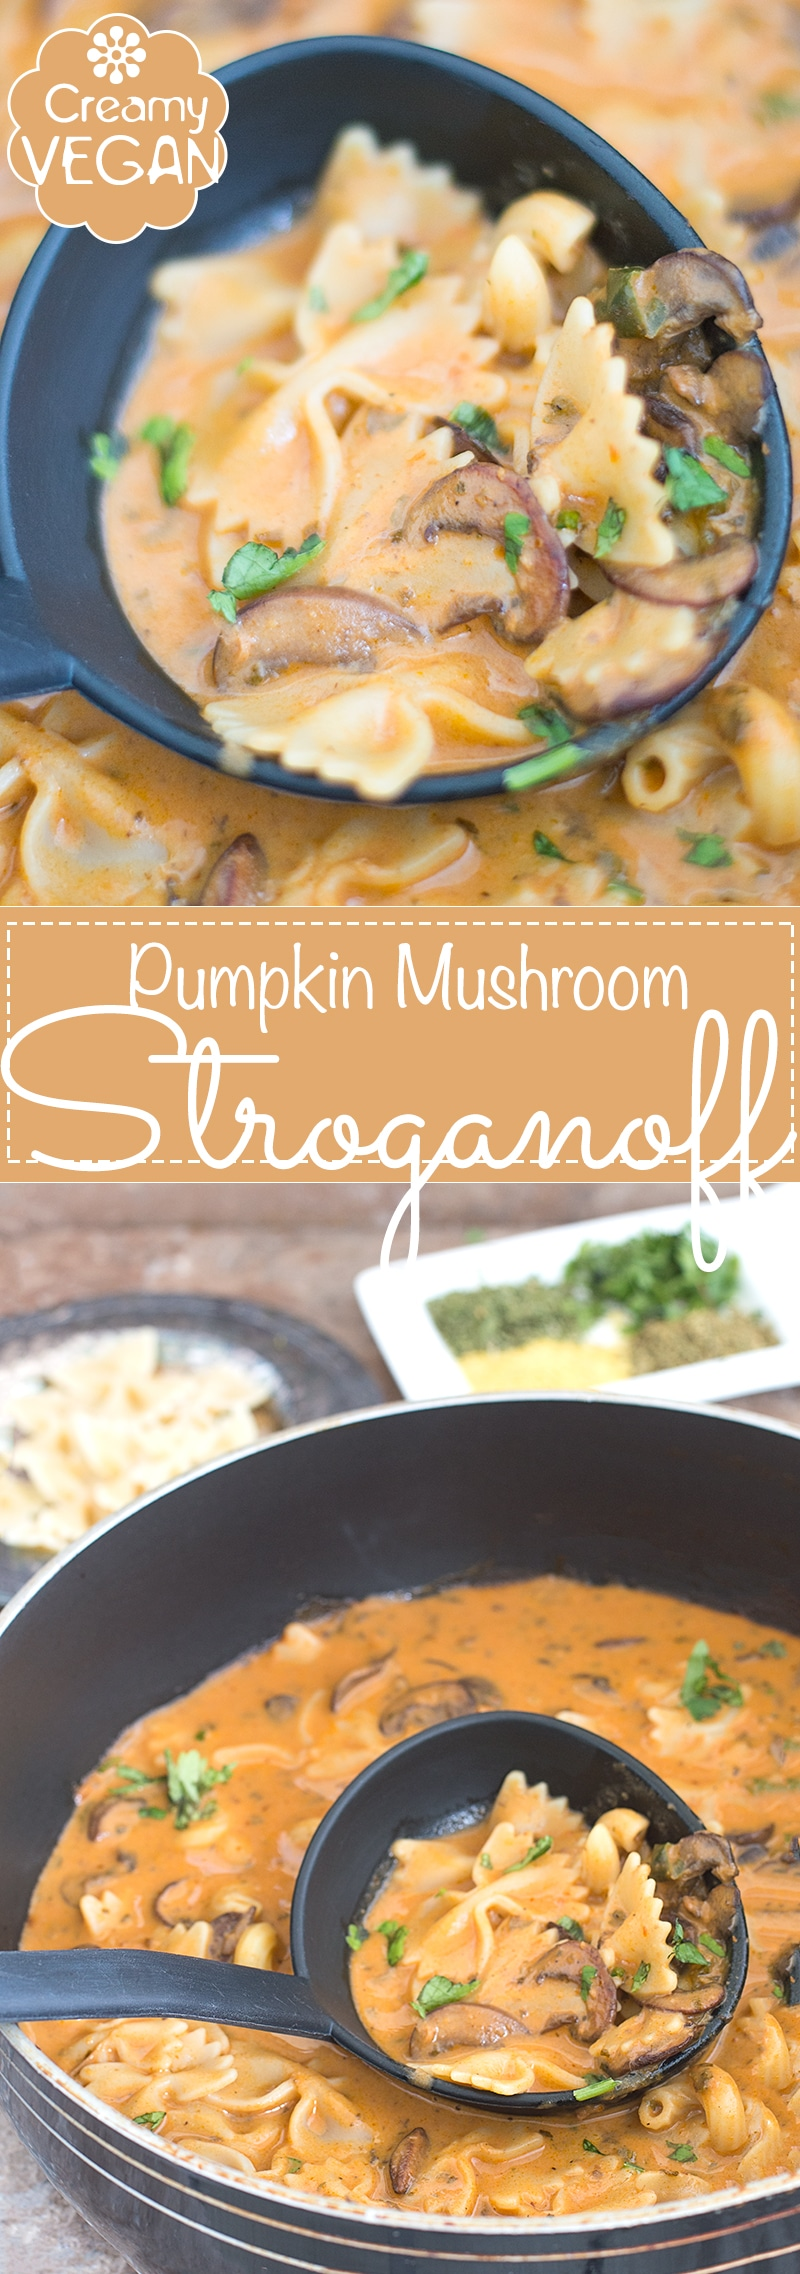 Vegan Creamy Mushroom Stroganoff made with Pumpkin Puree and Coconut Milk. This is the Perfect Weeknight Dinner Recipe. Add Rice or Pasta and Make this a Hearty Recipe. Made in Under 30 Minutes   easy vegan dinner, weeknight favorite, comfort food, family dinner